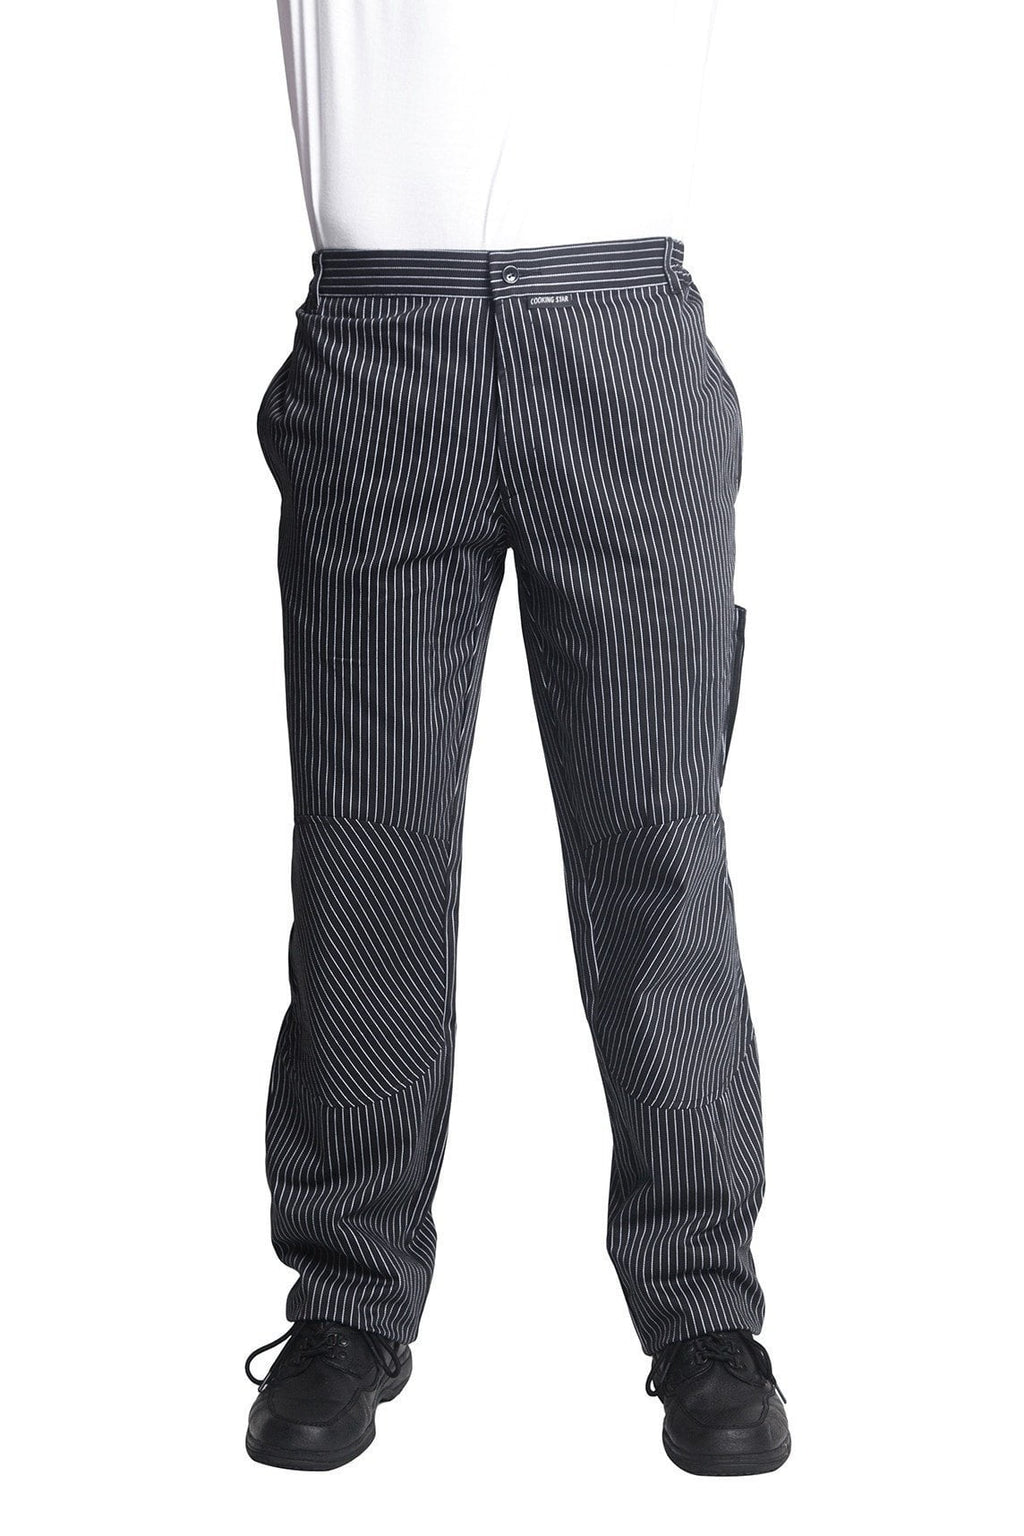 Bragard Pantalon Miami Chef Pants